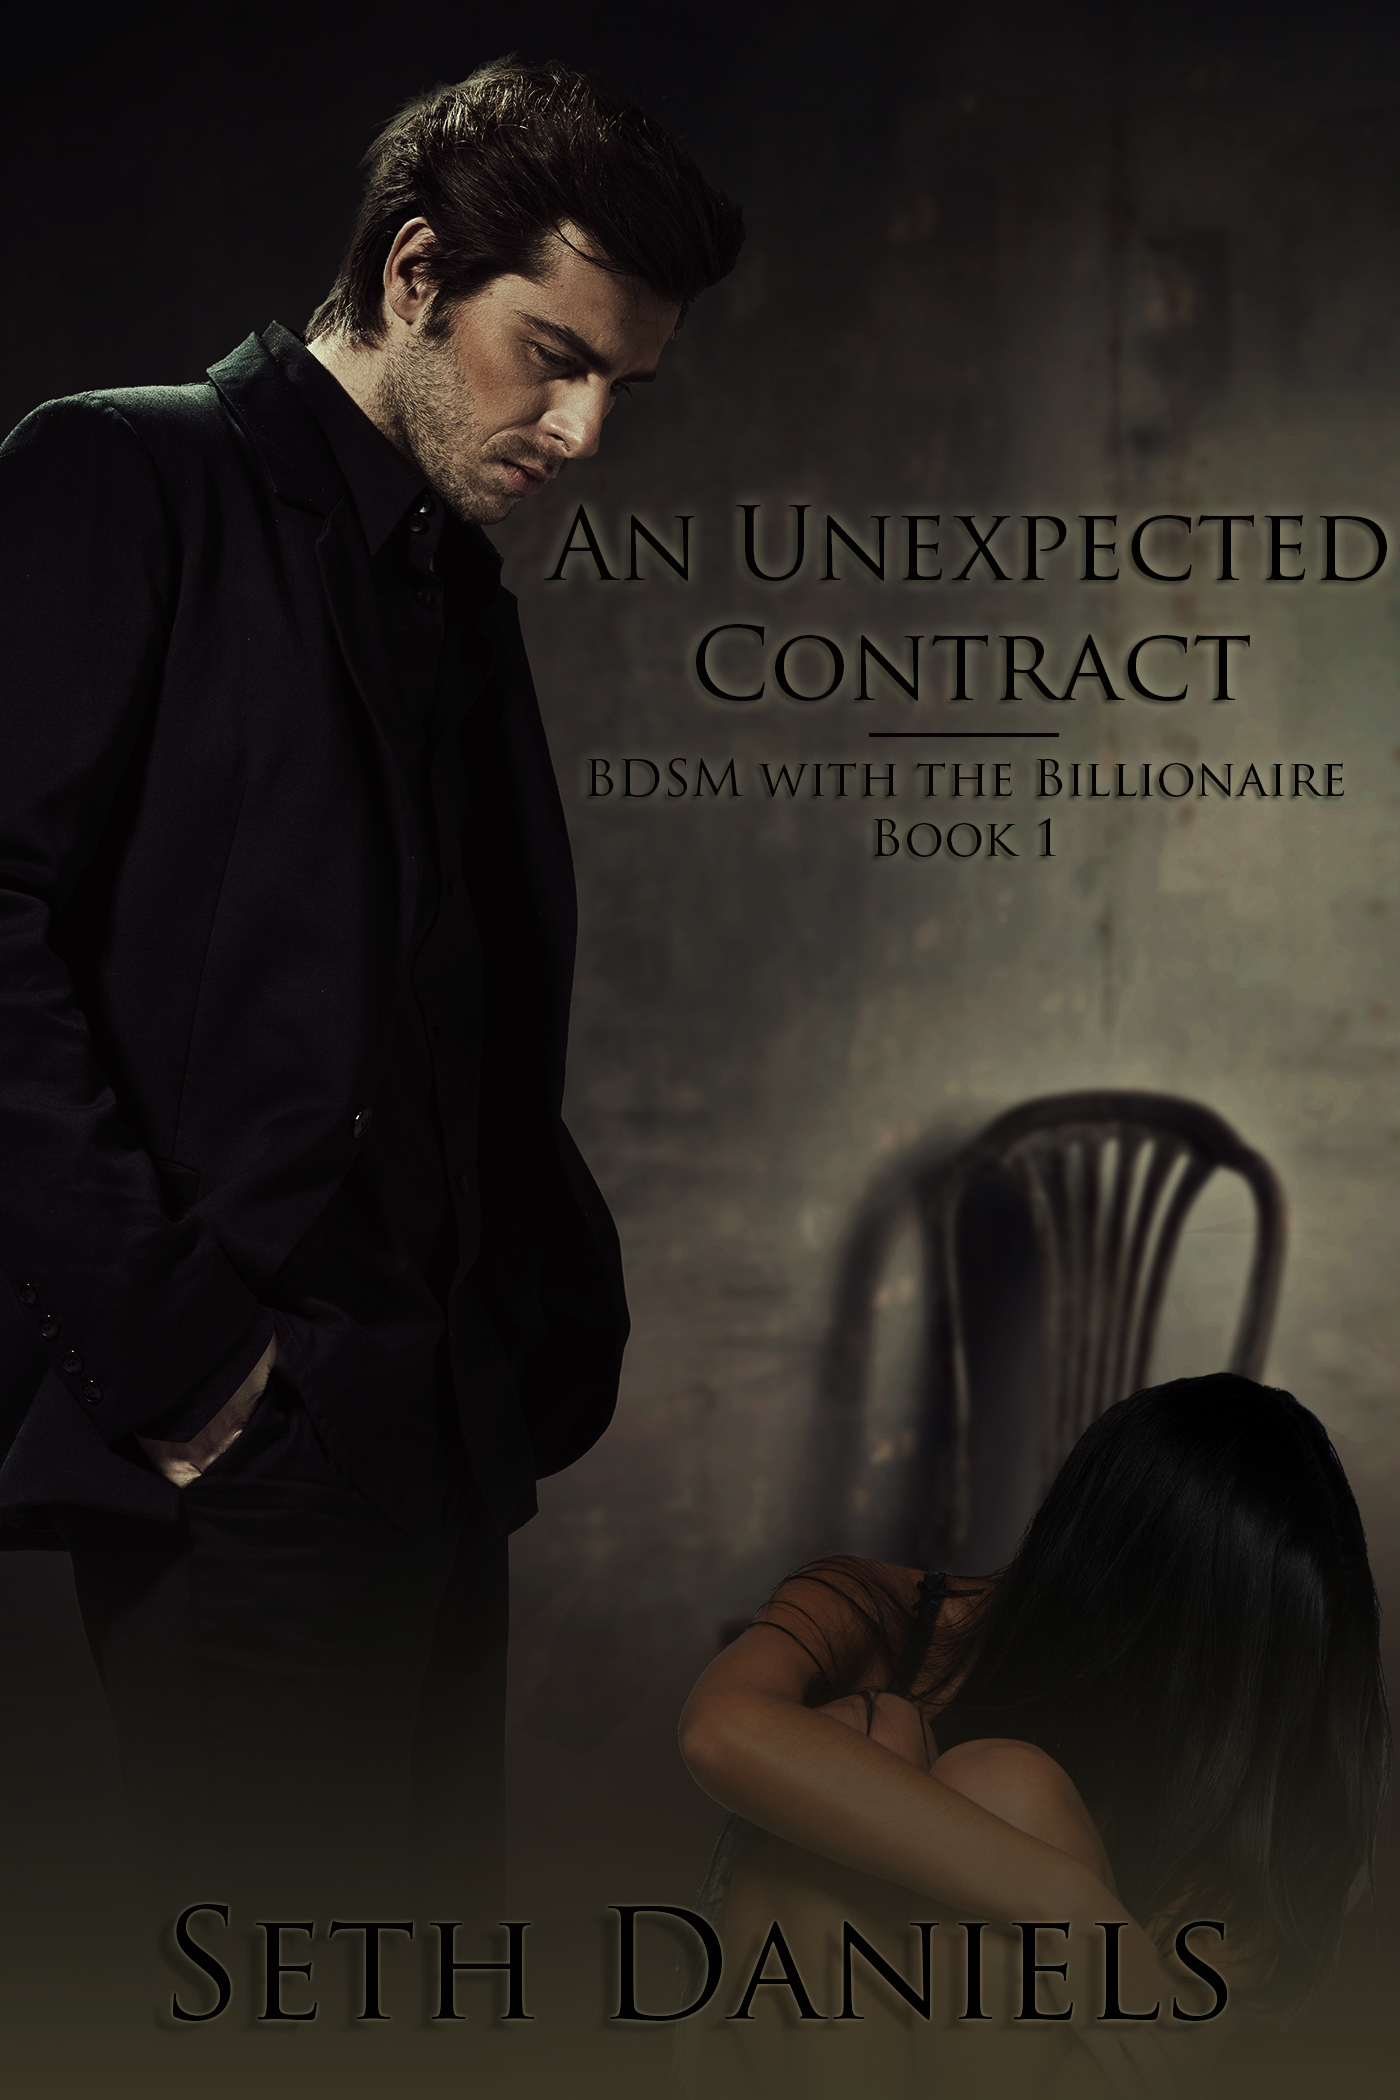 An Unexpected Contract: BDSM with the Billionaire Series, Book One Seth Daniels